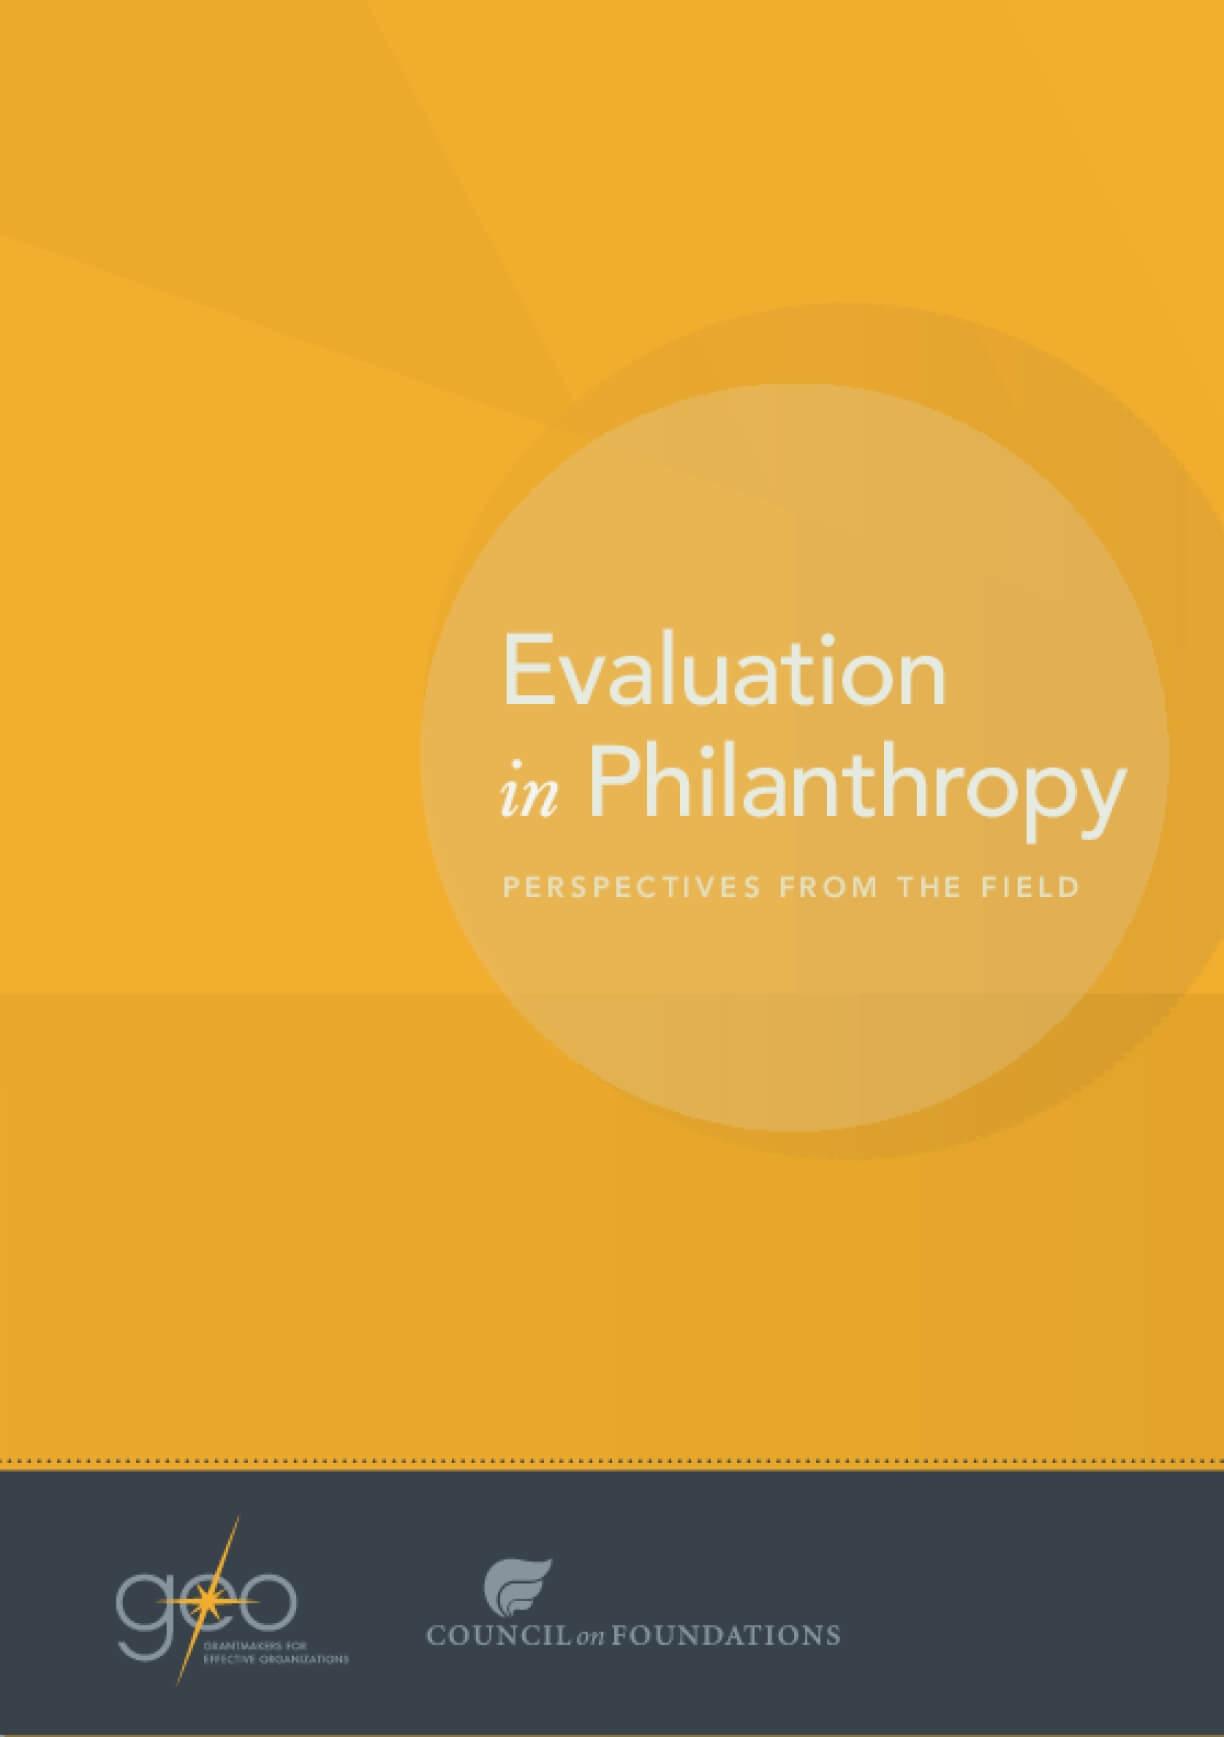 Evaluation in Philanthropy: Perspectives From the Field